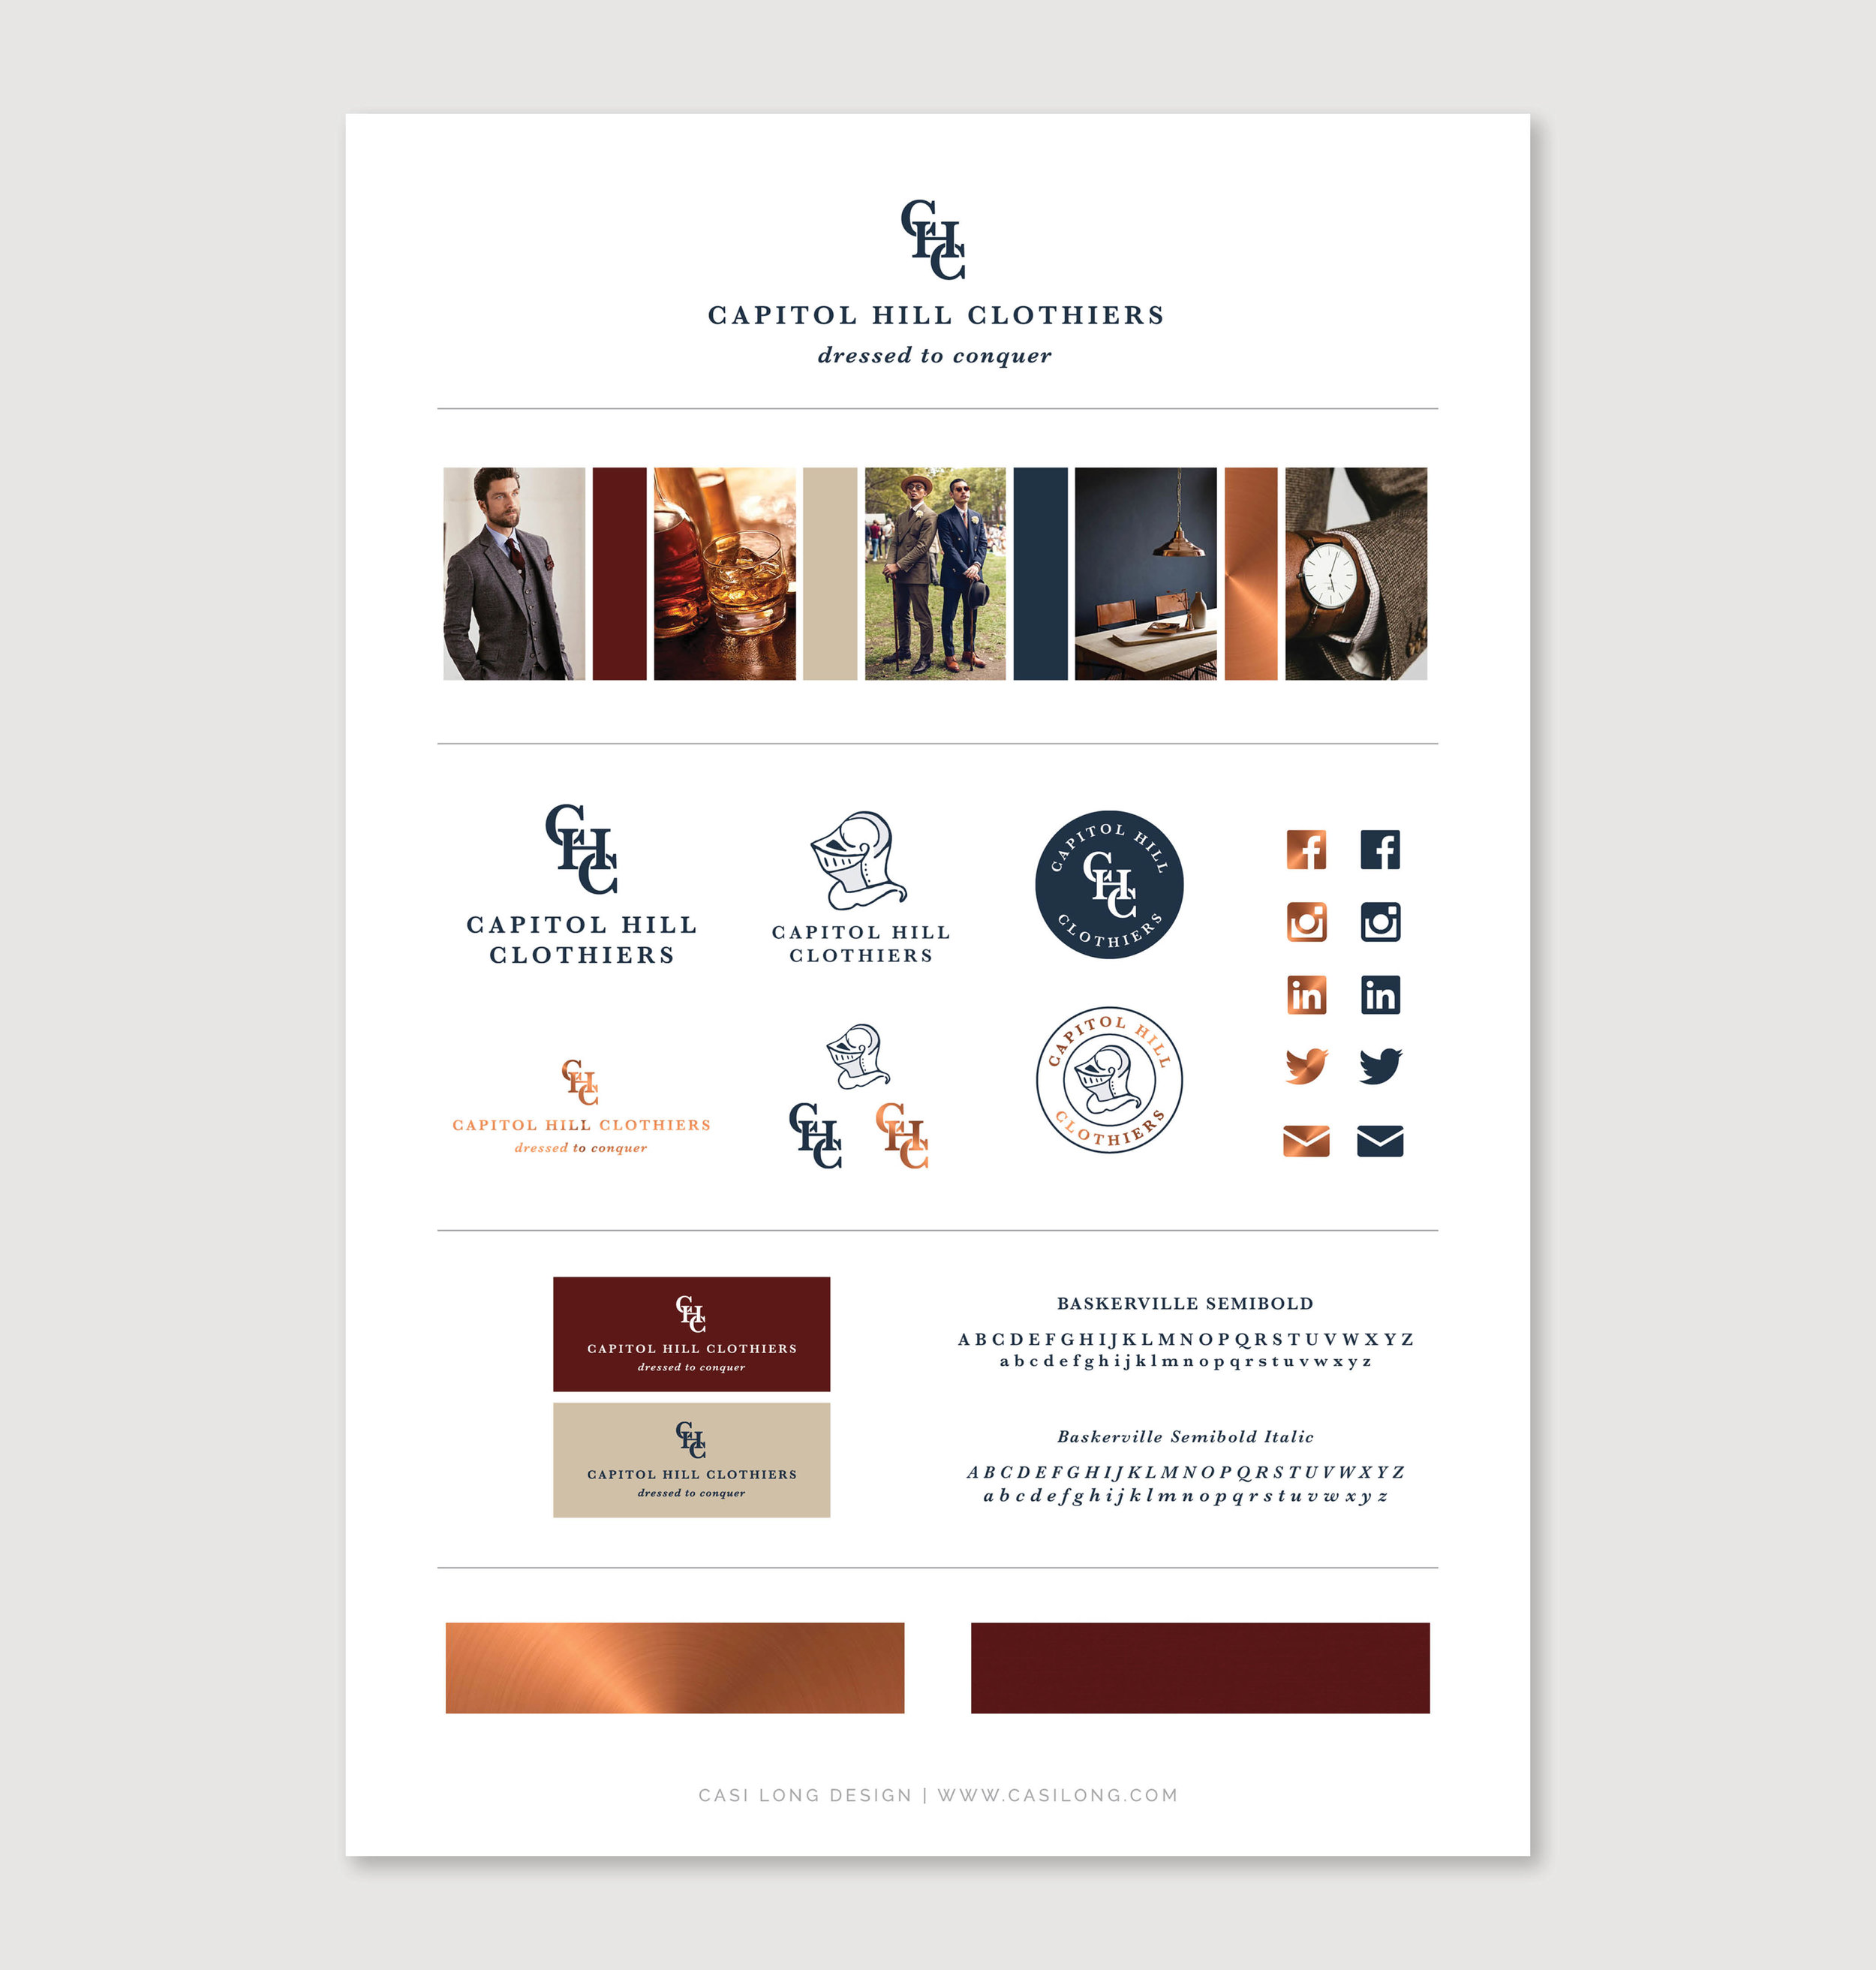 Capitol Hill Clothiers Branding by Casi Long Design | casilong.com .jpg